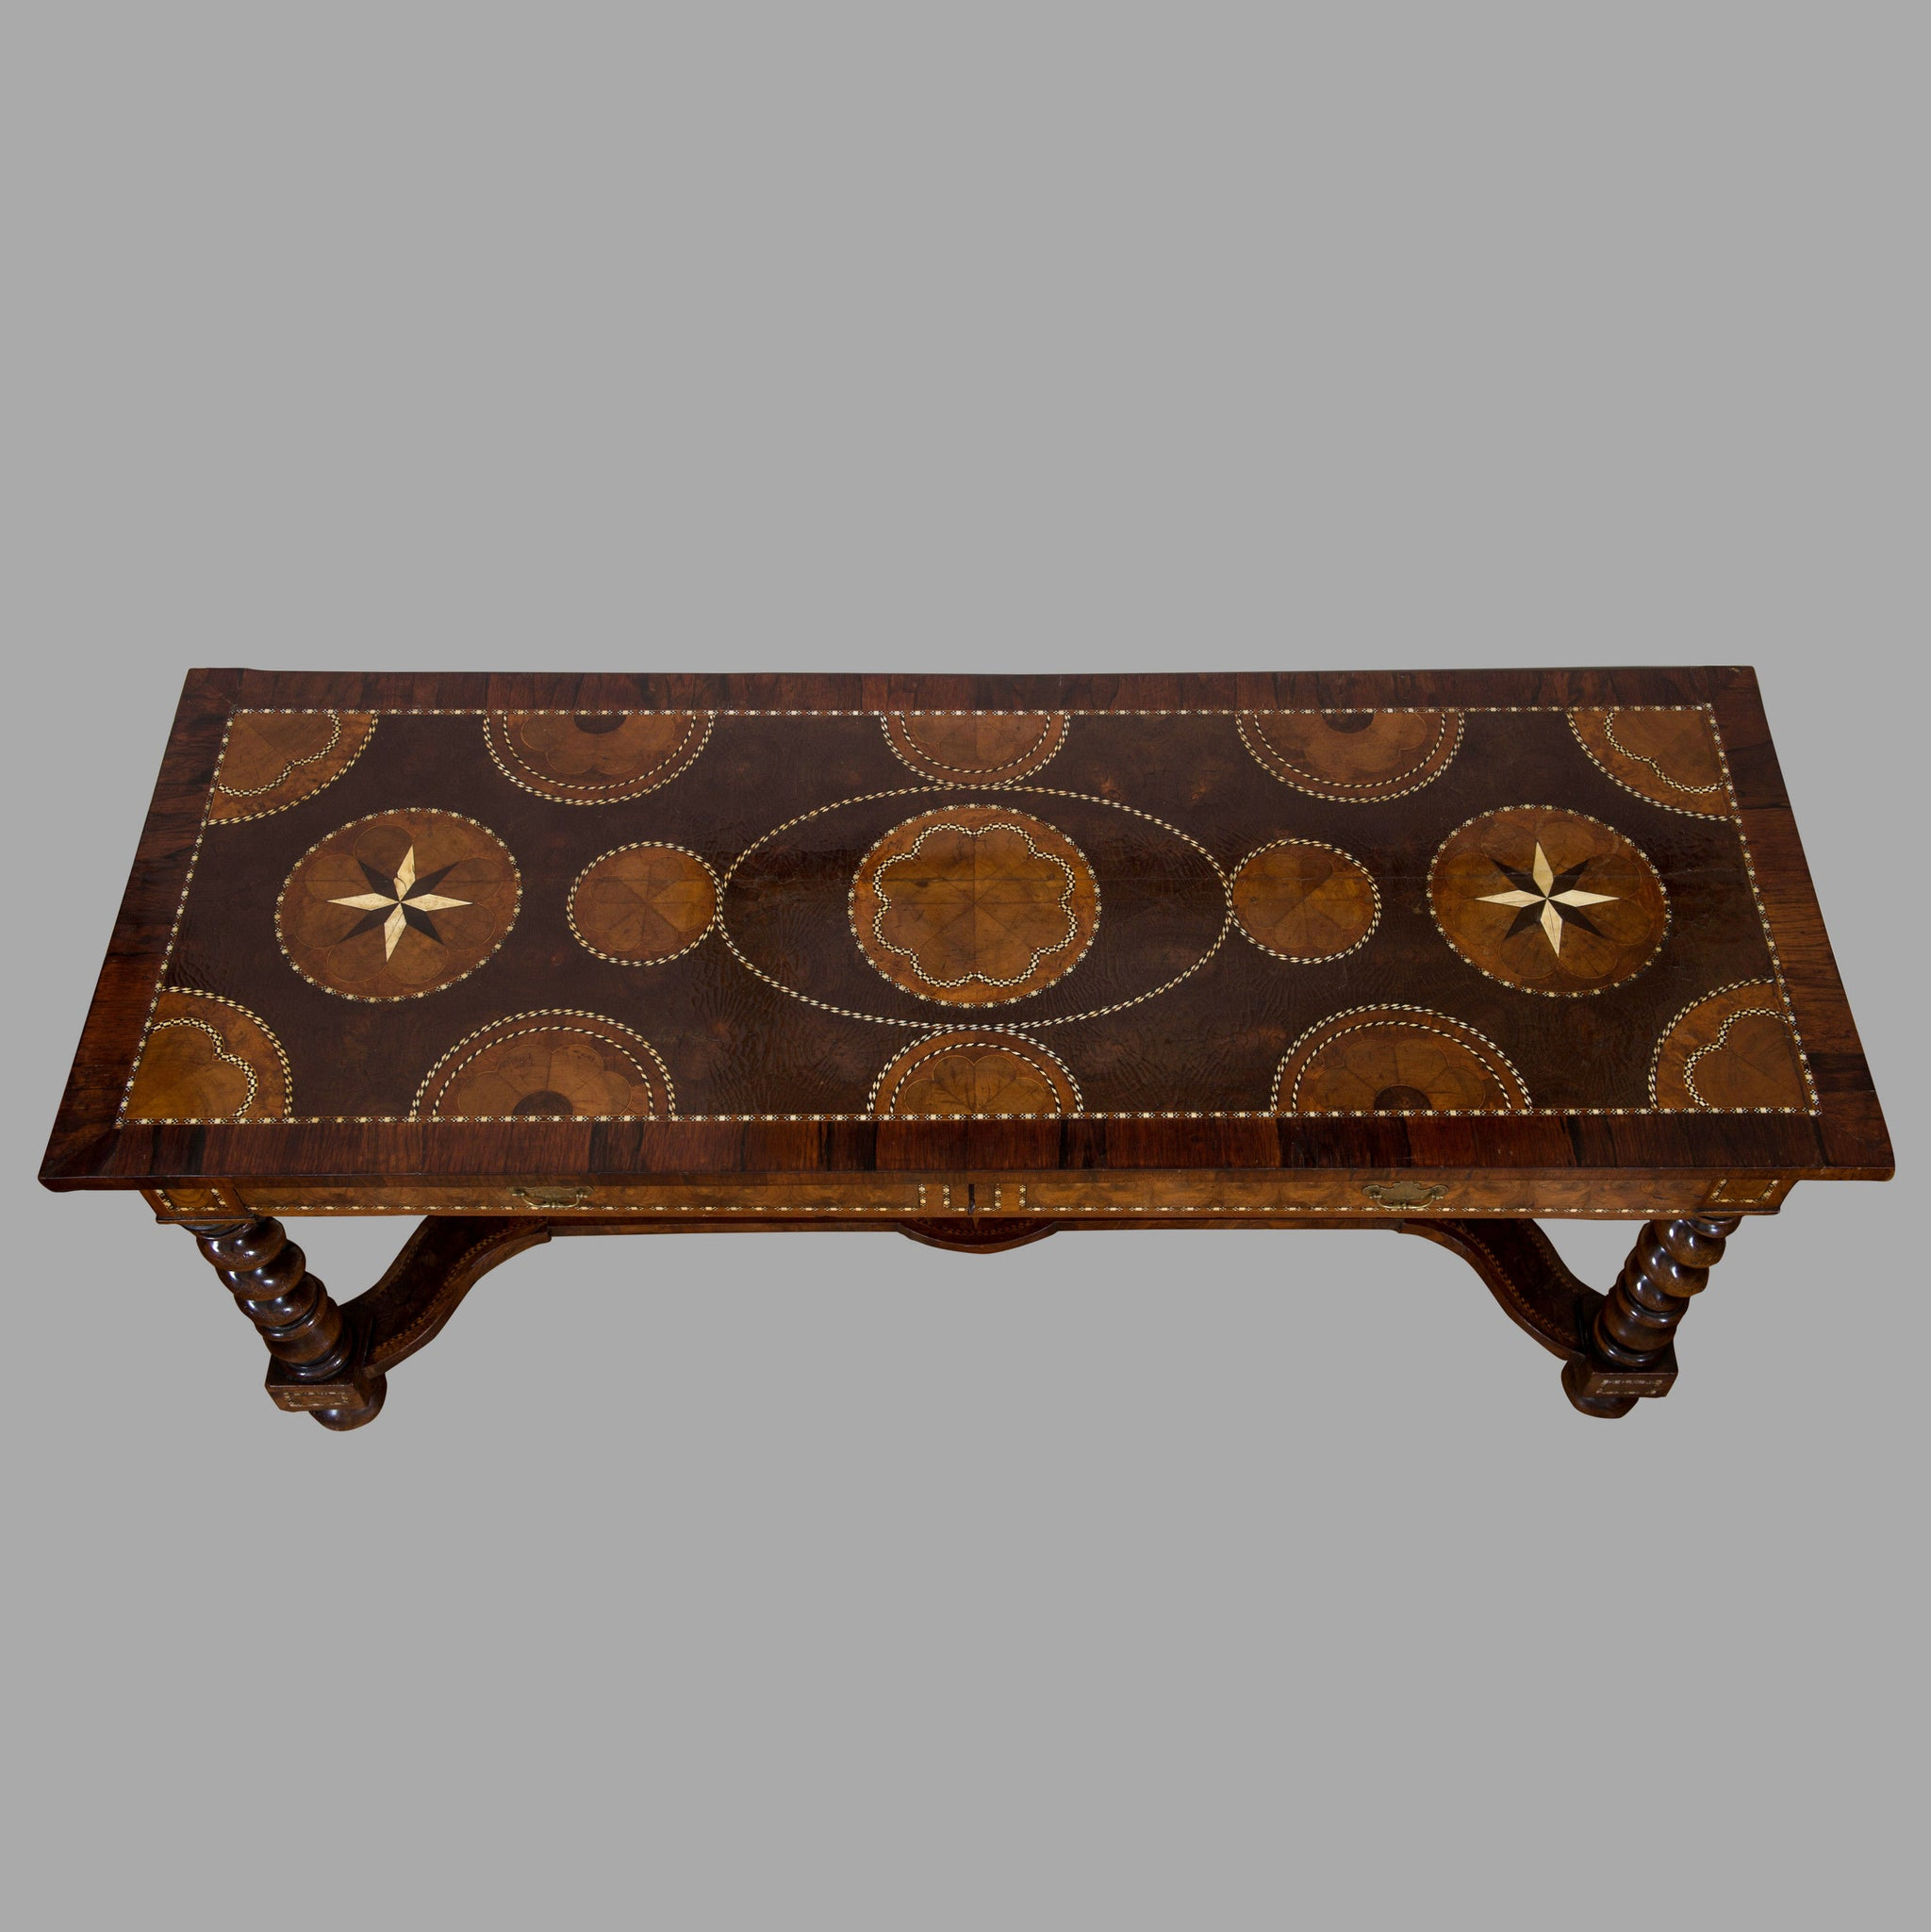 William III Anglo-Dutch Marquetry Side Table